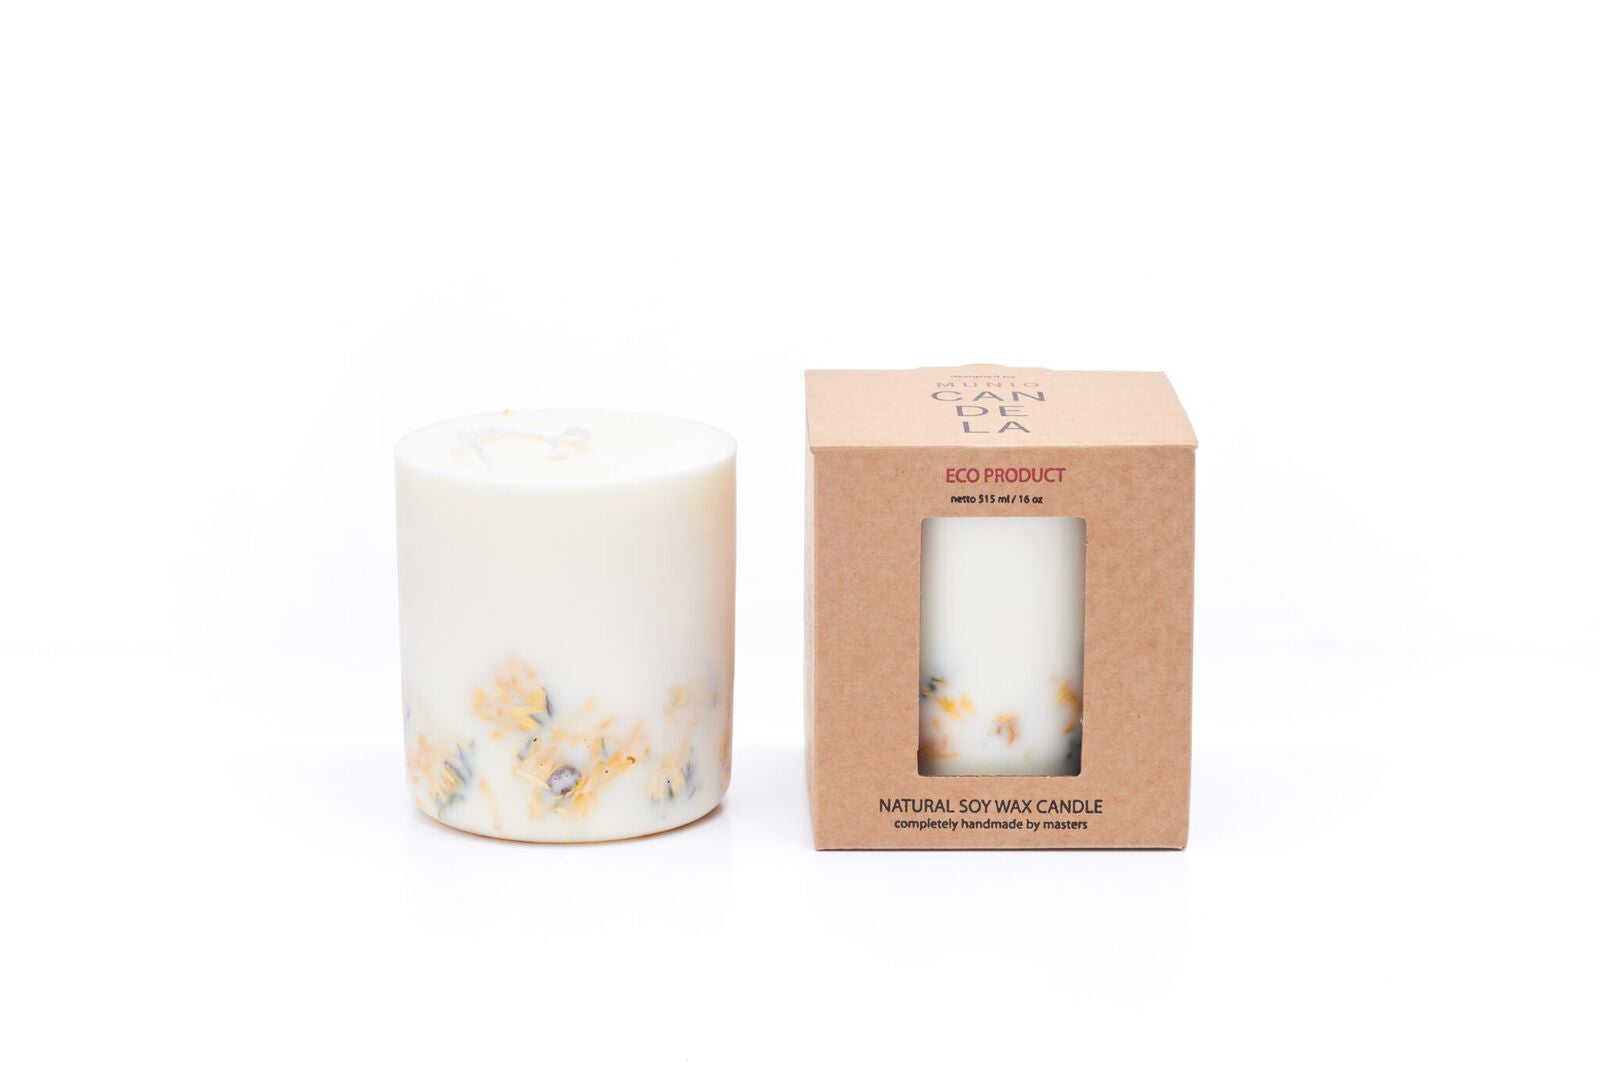 Marigold Flower Candle Munio Candela with packaging